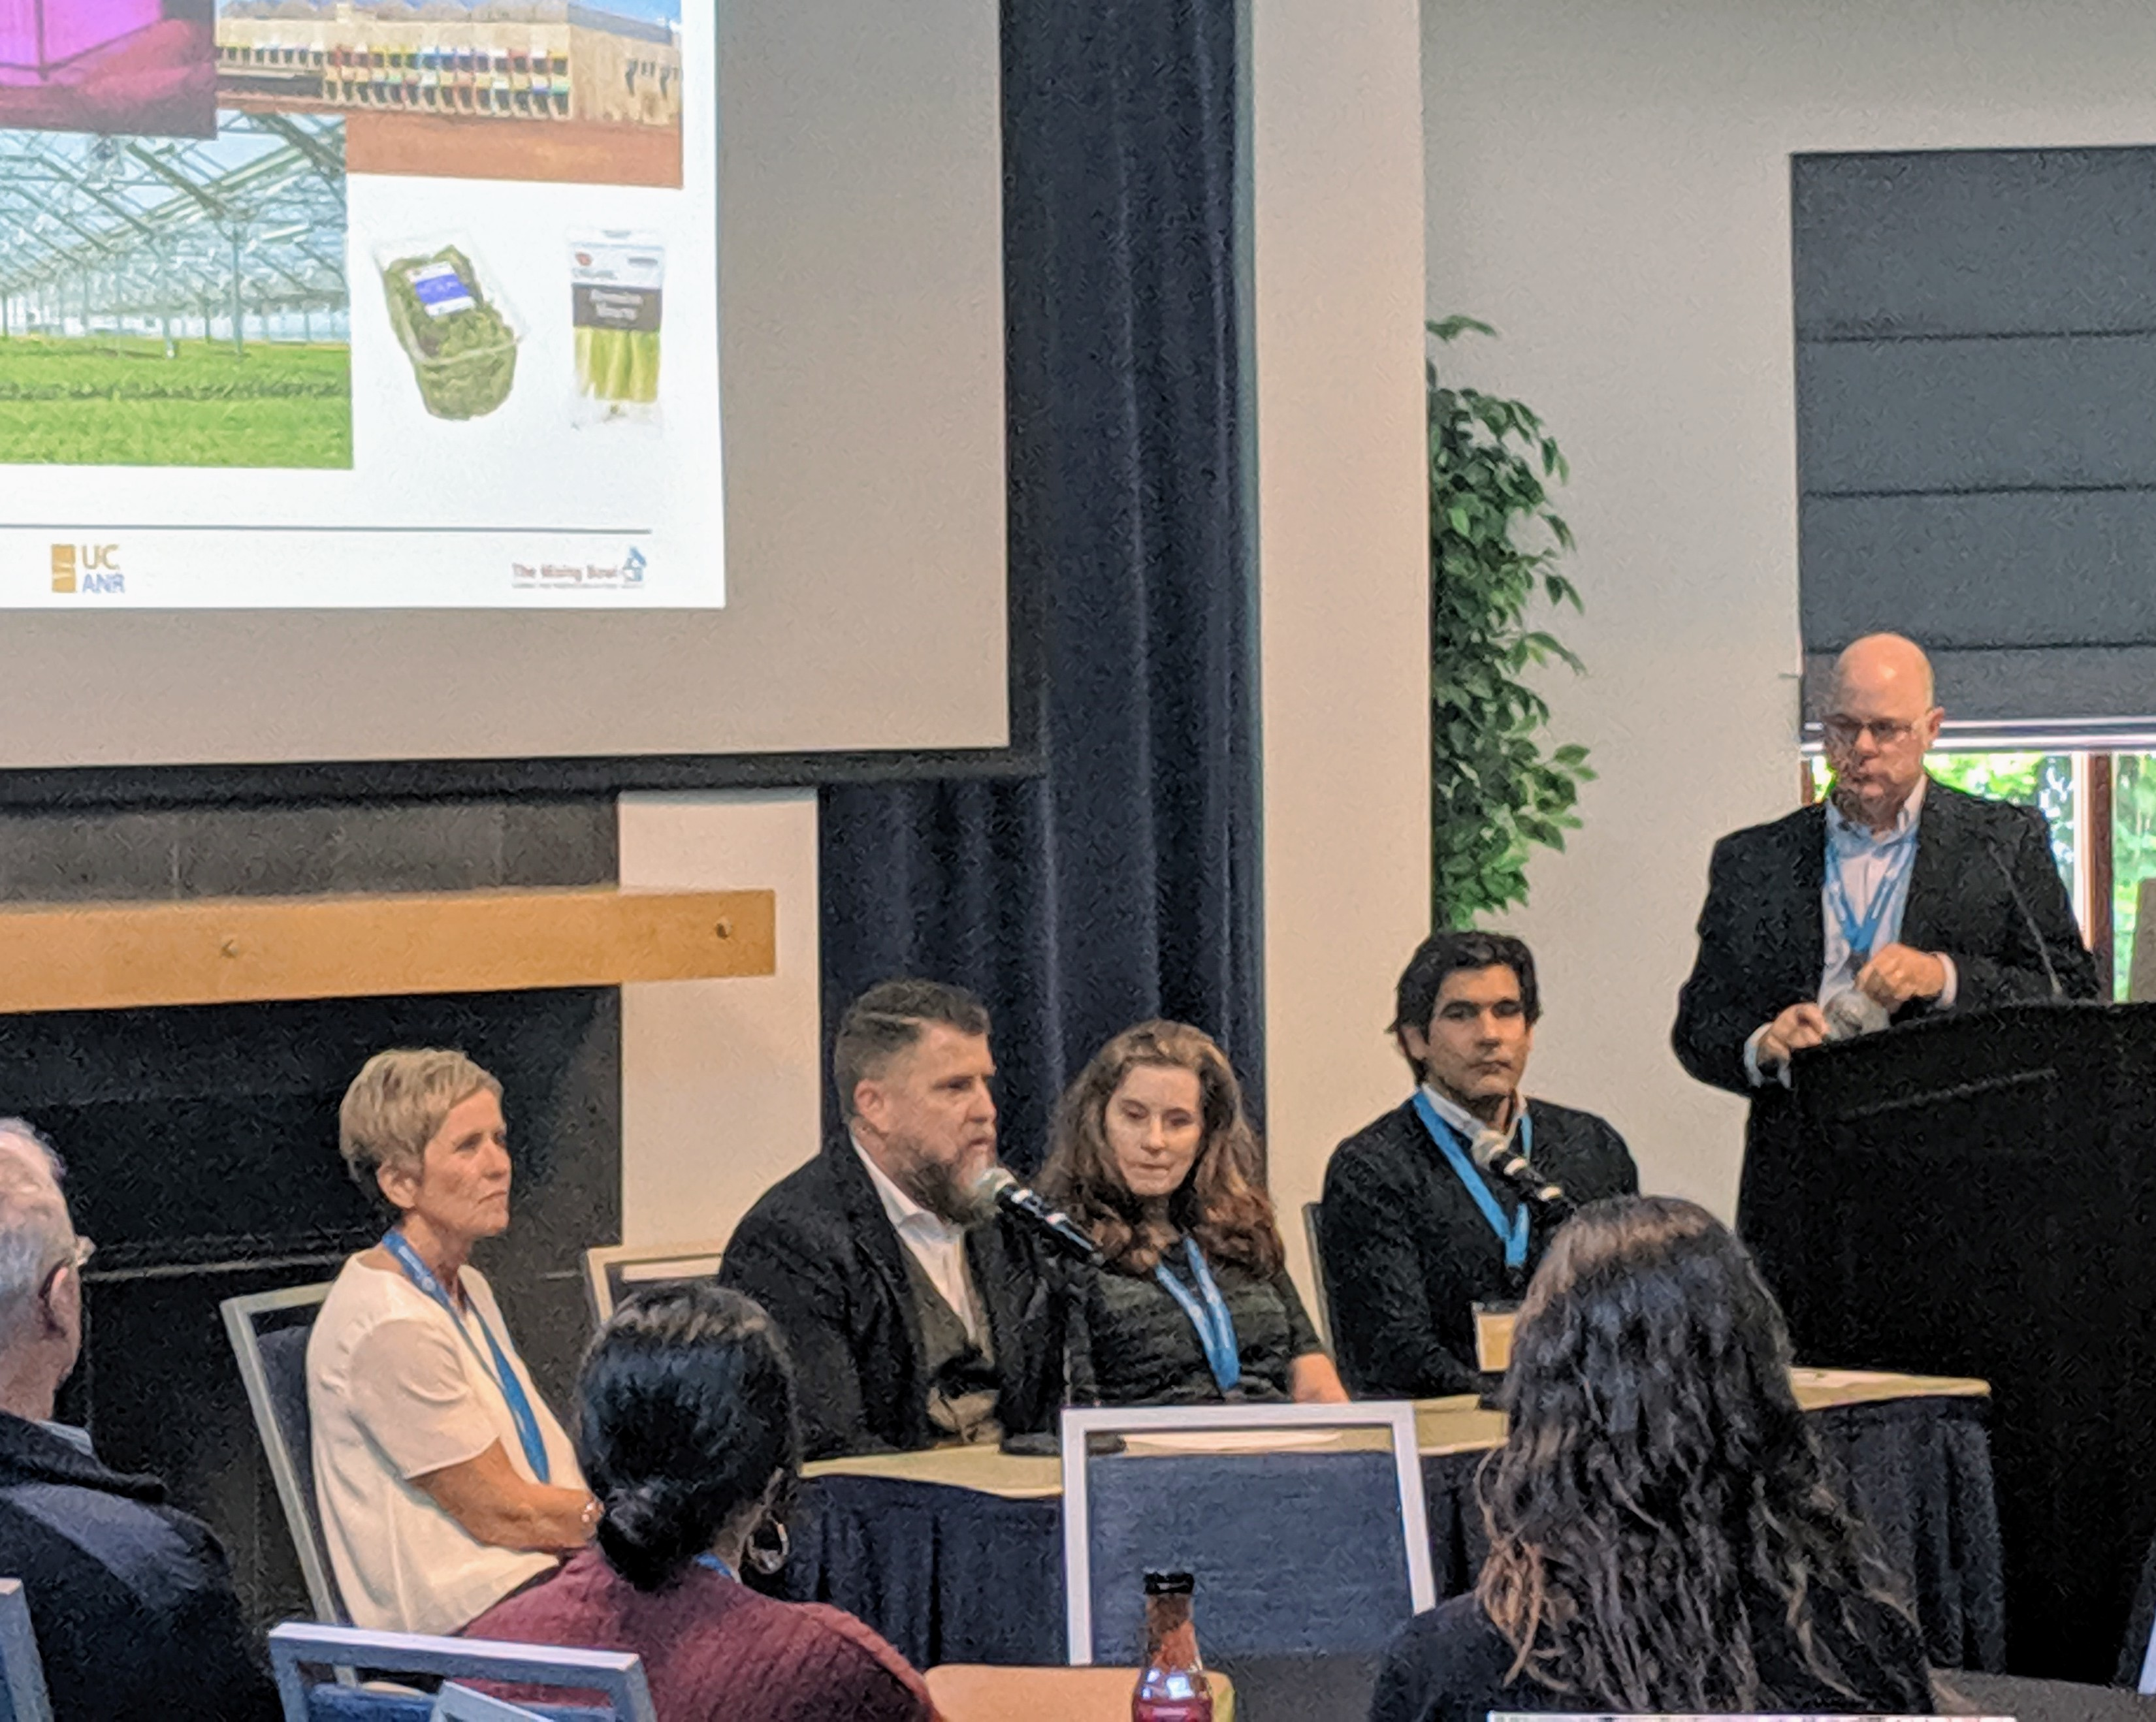 Innovation Institute for Food and Health 2019 Innovator Summit Hosts a Lively Panel Discussion on Indoor Agriculture - The Vine